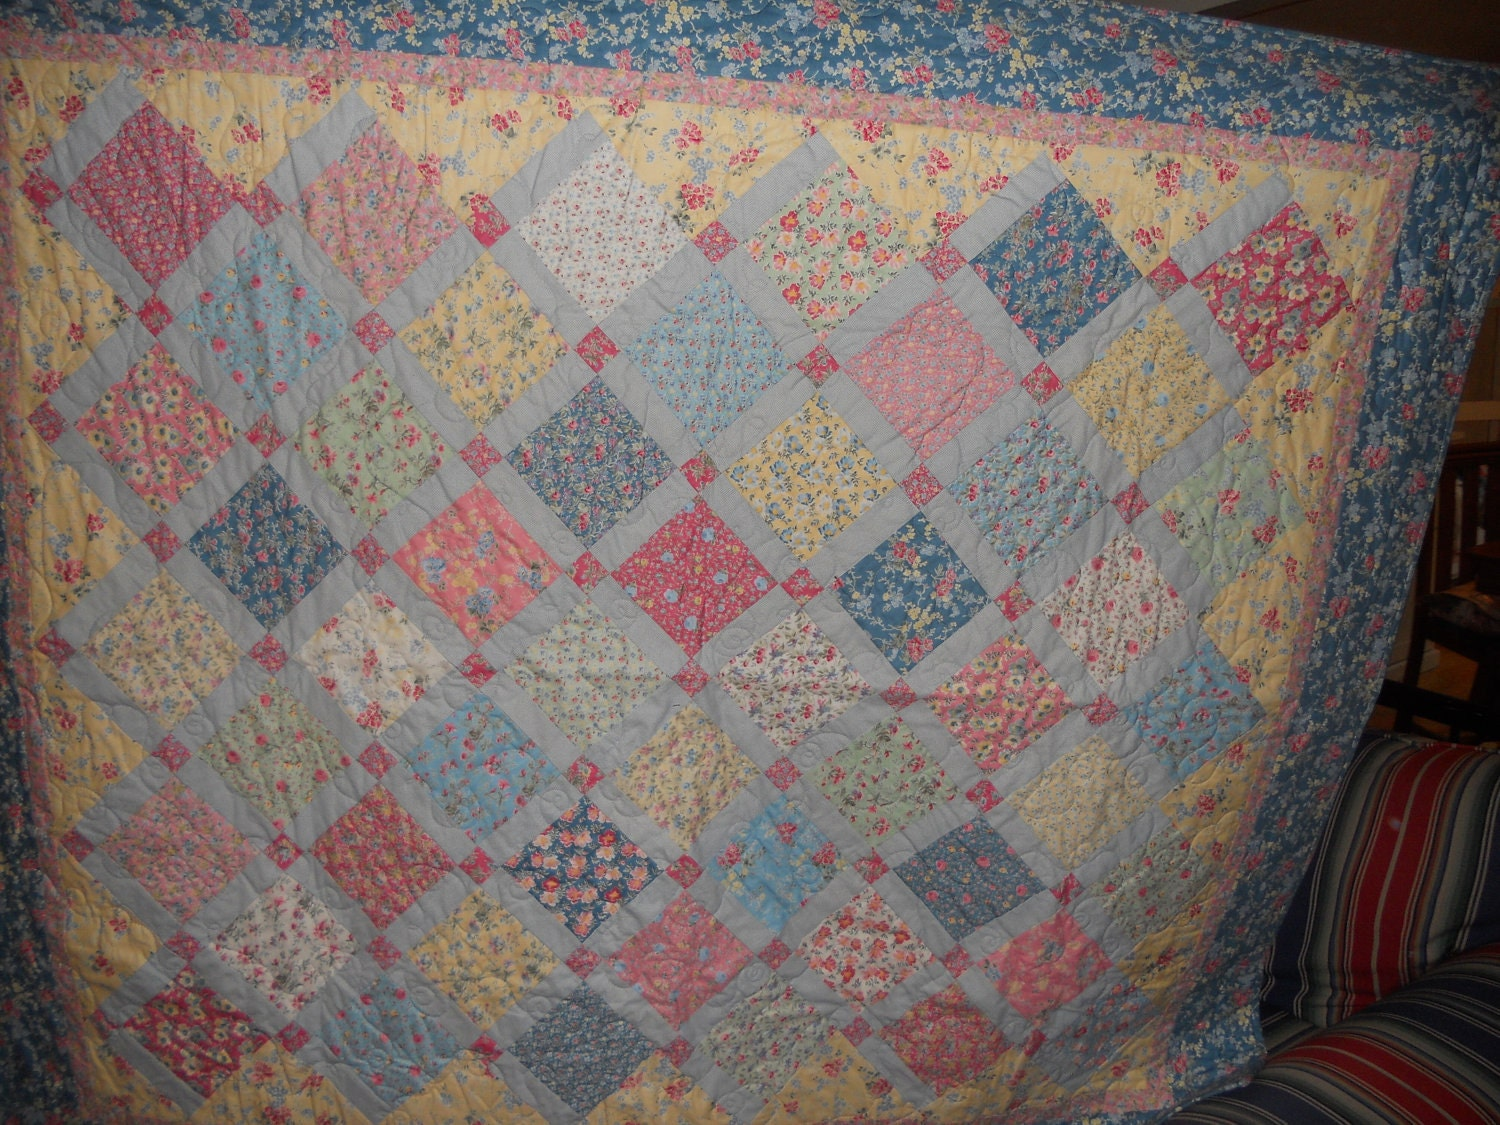 Pastel Floral Patchwork Lap Or Throw Quilt By